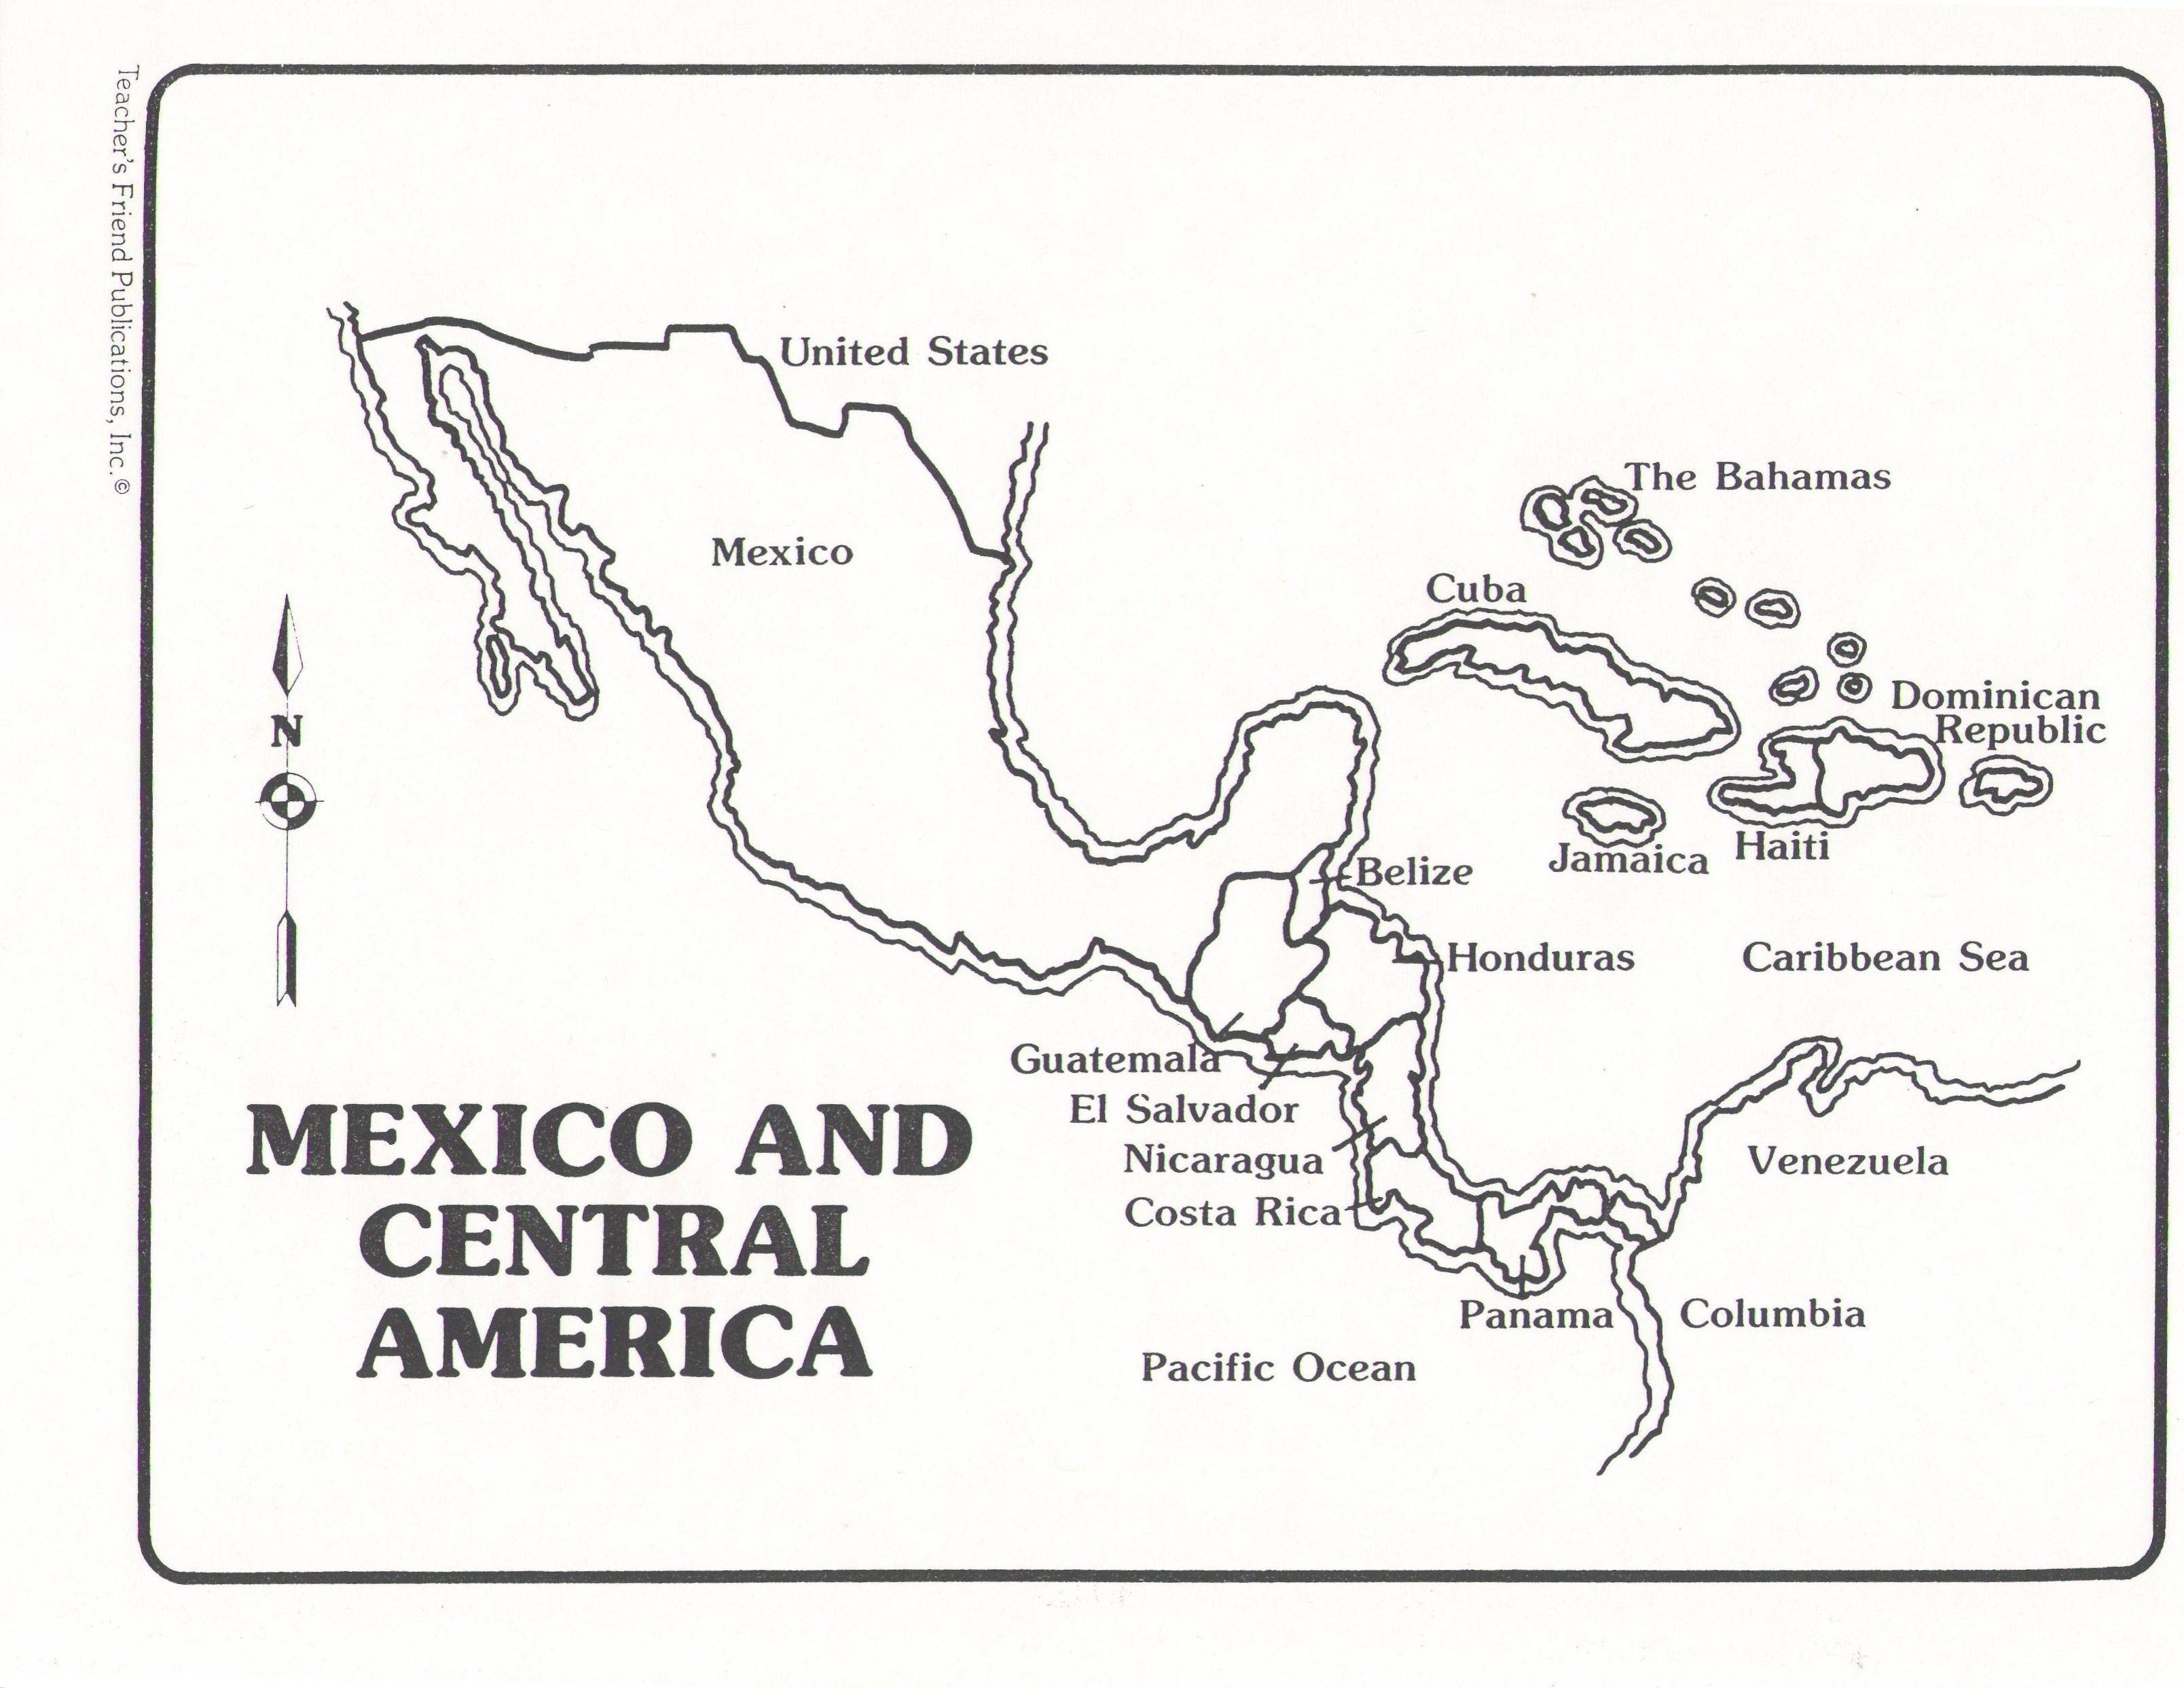 Coloring Sheet Map Of Central America Google Search Central